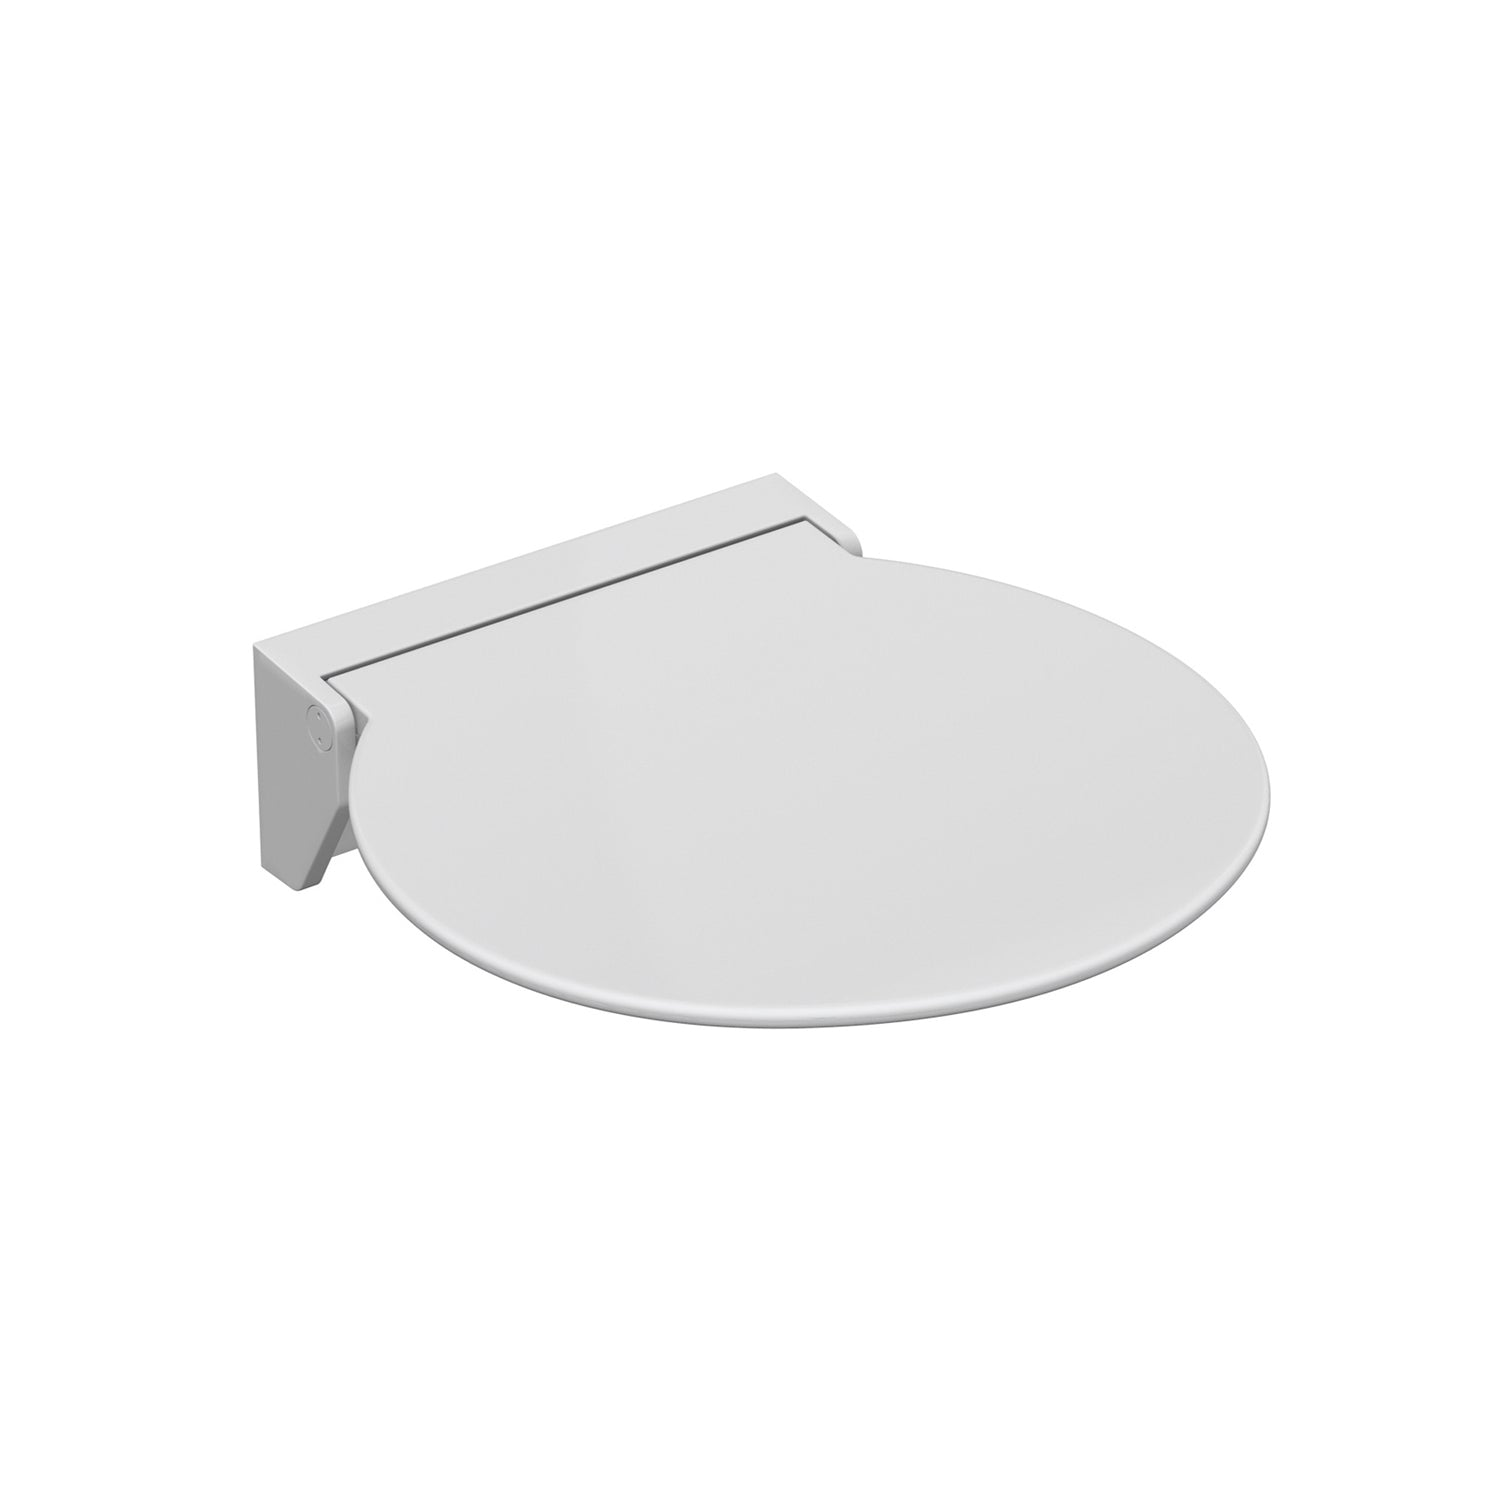 Circula Shower Seat with a white seat and white bracket on a white background